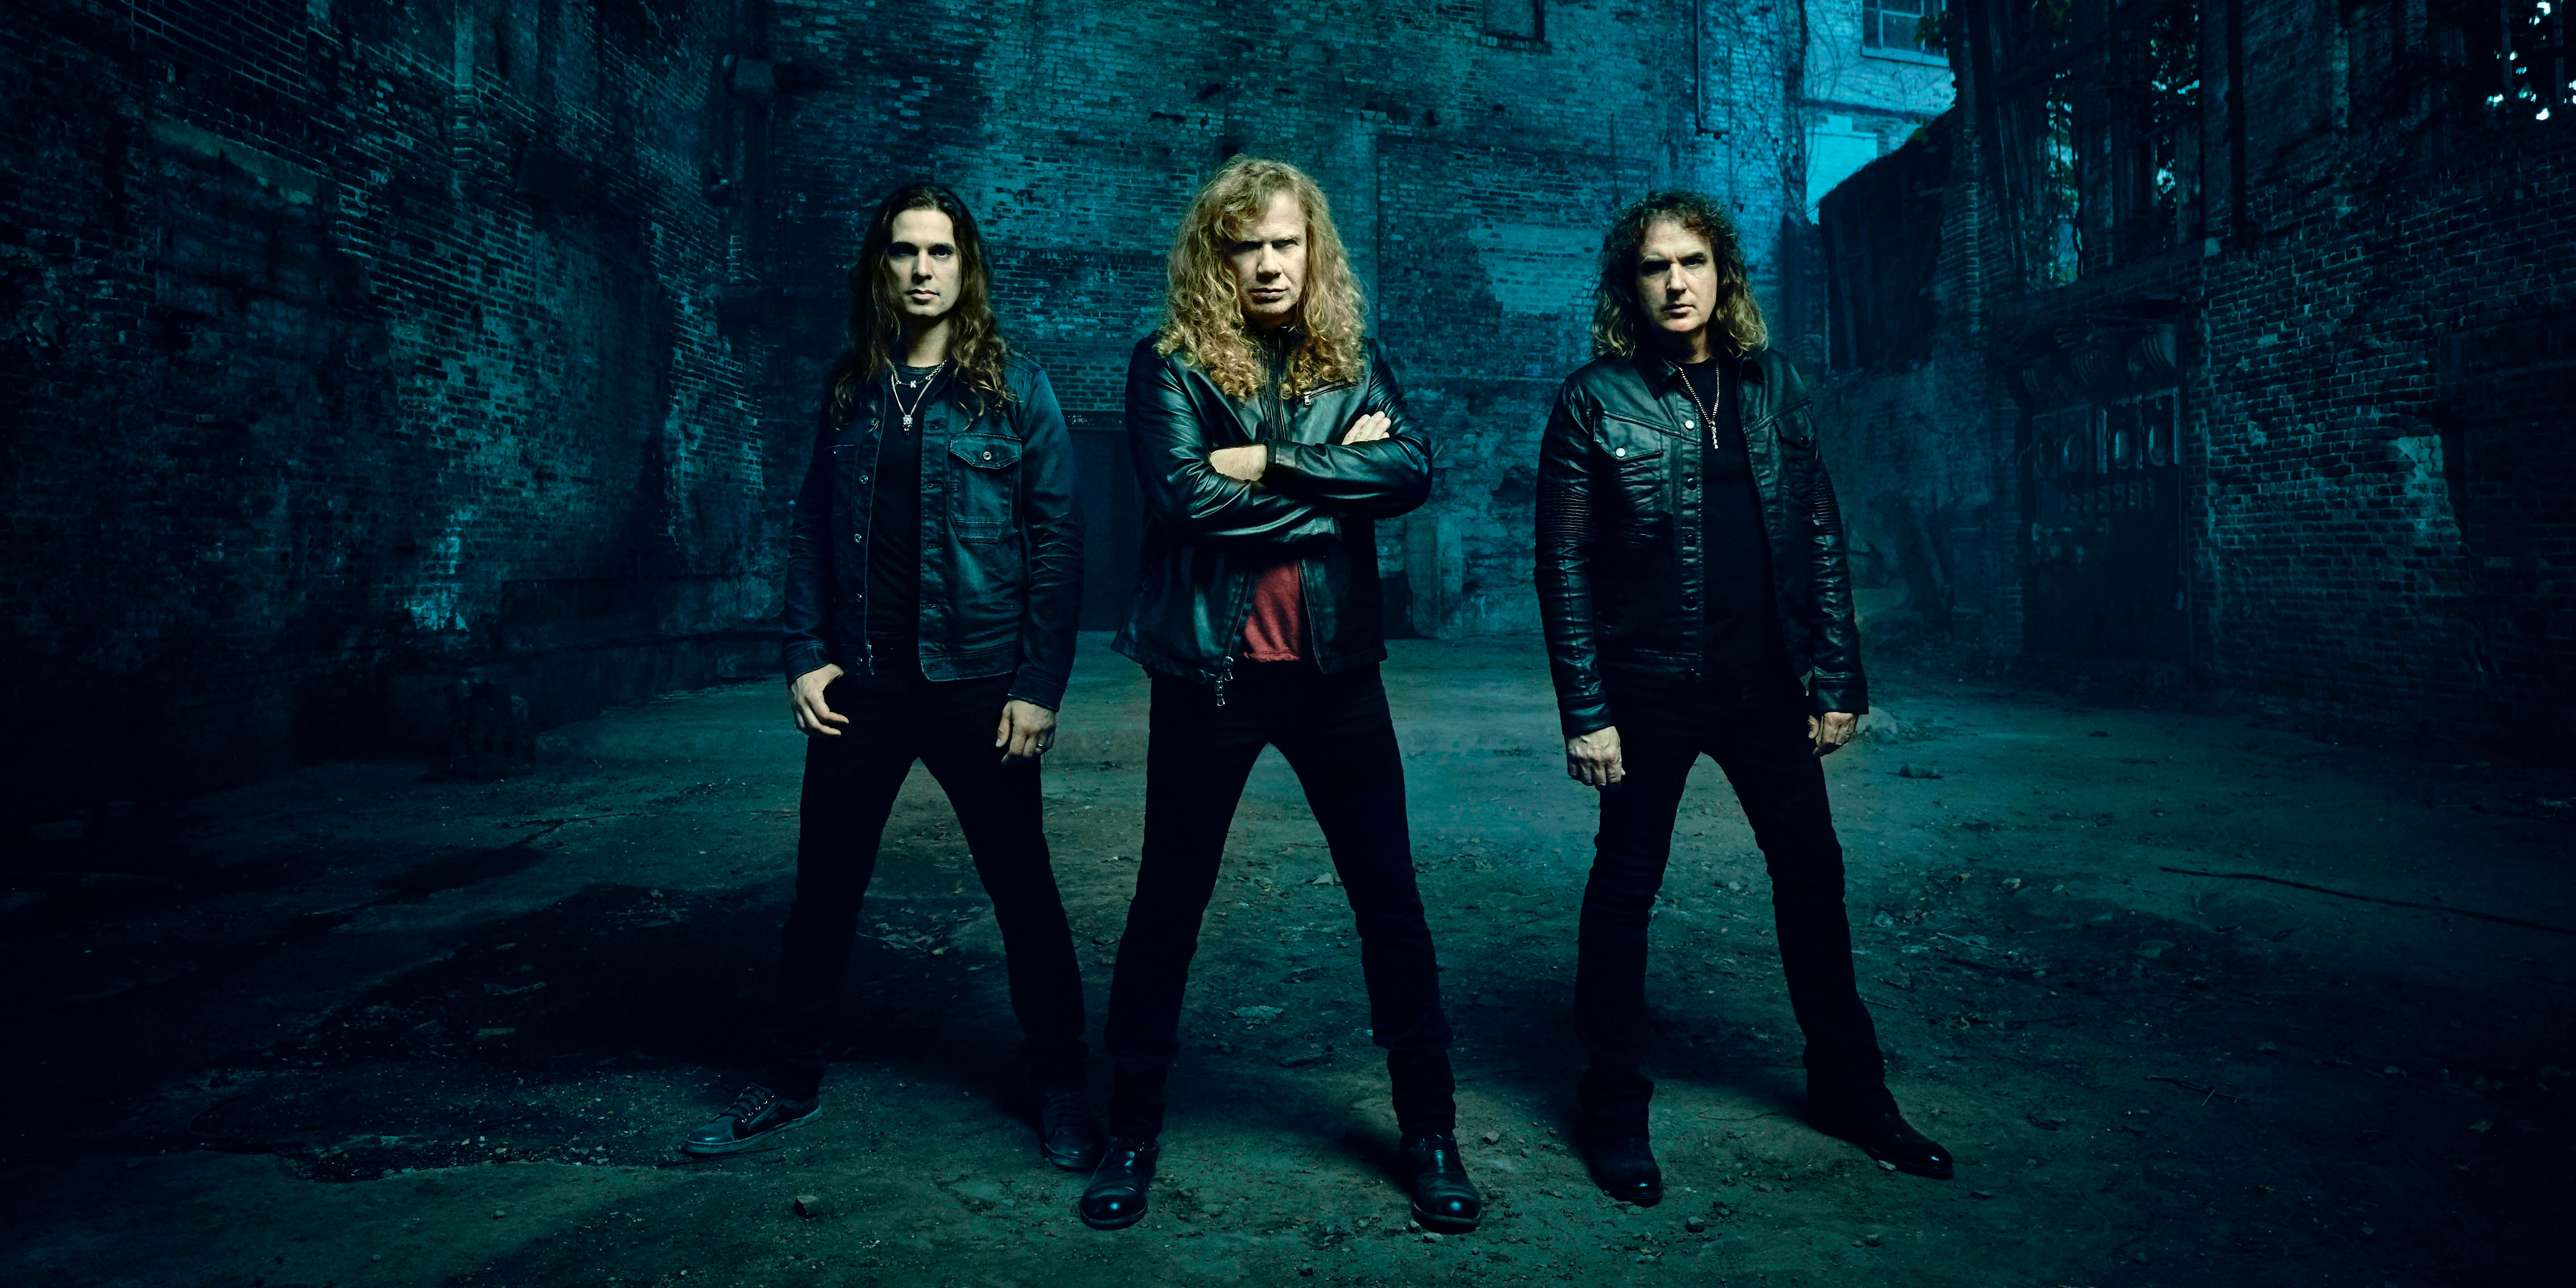 Thrash metal pioneers Megadeth brings their Dystopia World Tour to Singapore